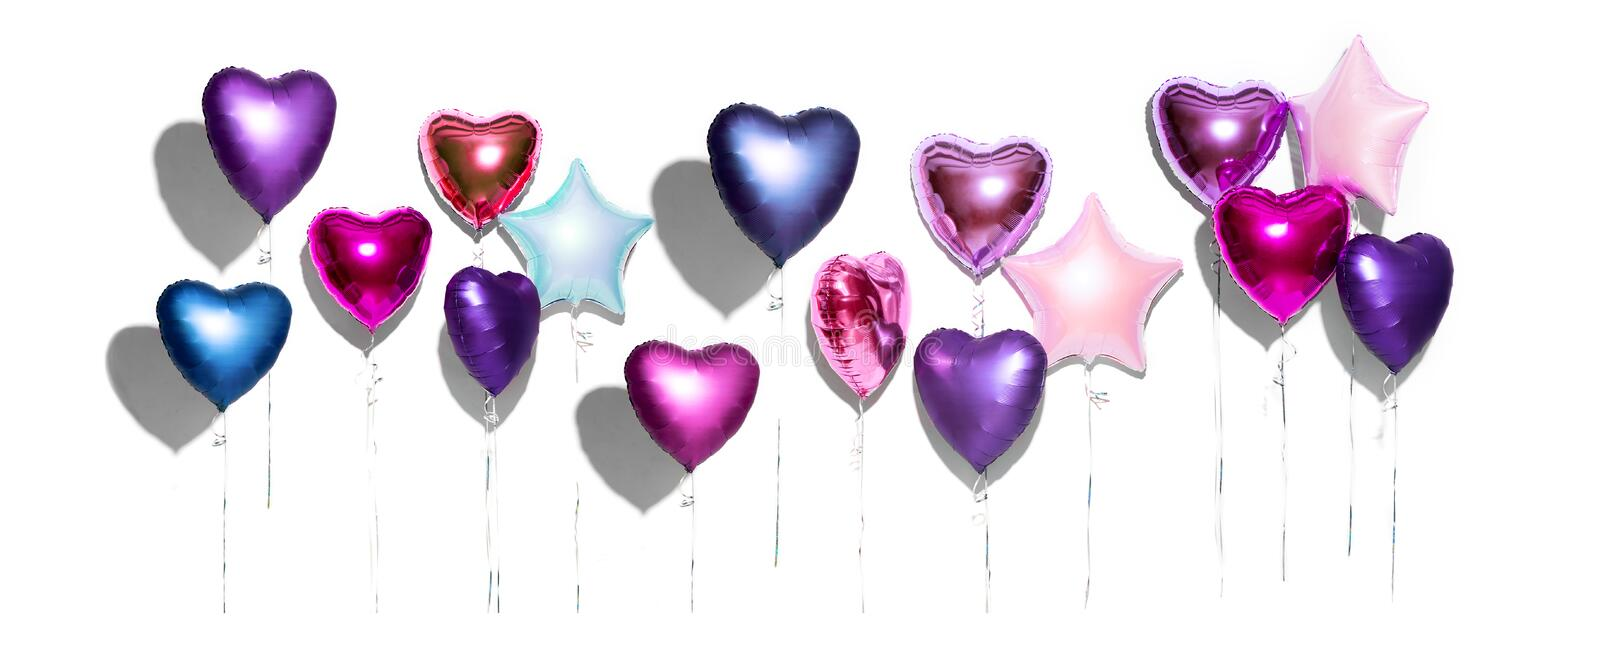 Air balloons. Bunch of purple heart shaped foil balloons, isolated on white background. Valentine`s day. Background. Wide screen vector illustration